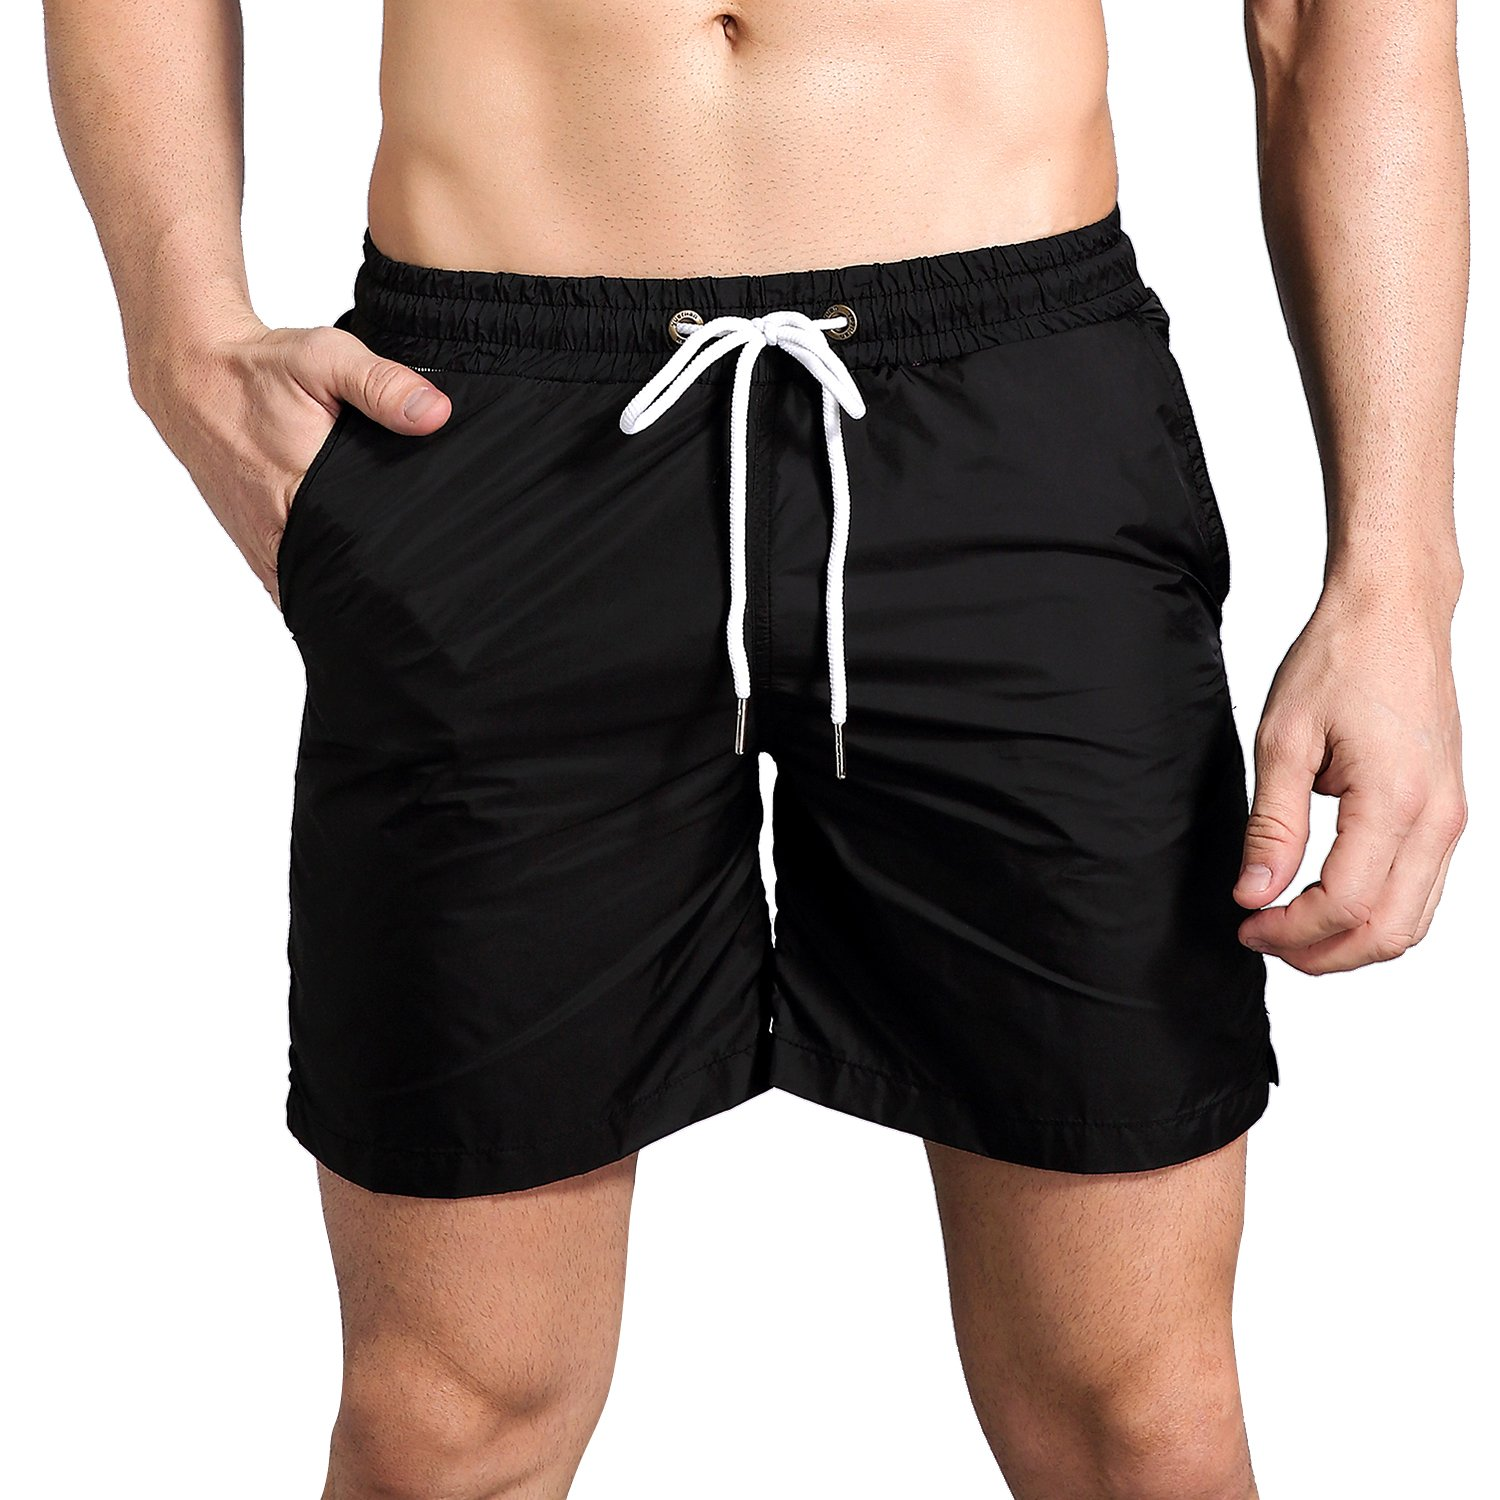 RoxZoom Men's Swim Trunks Quick Dry Board Shorts with Pockets, Casual Swim Shorts Beach Shorts with Mesh Lining for Men